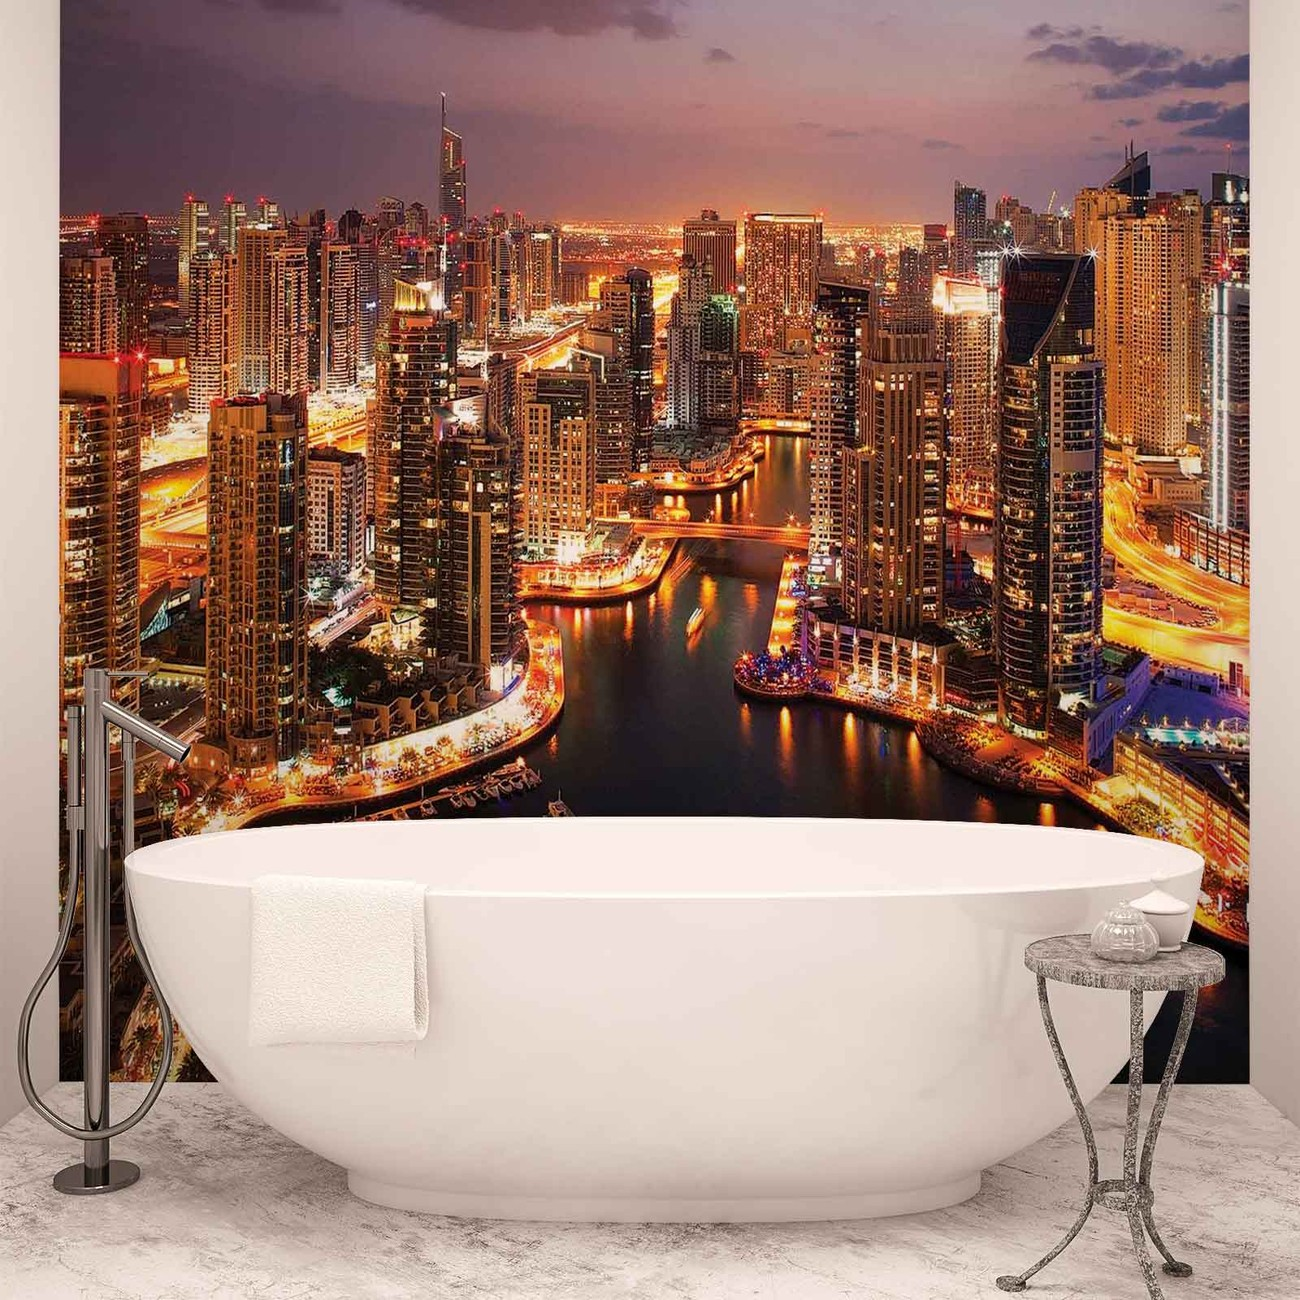 City dubai marina skyline wall paper mural buy at for Cityscape wall mural